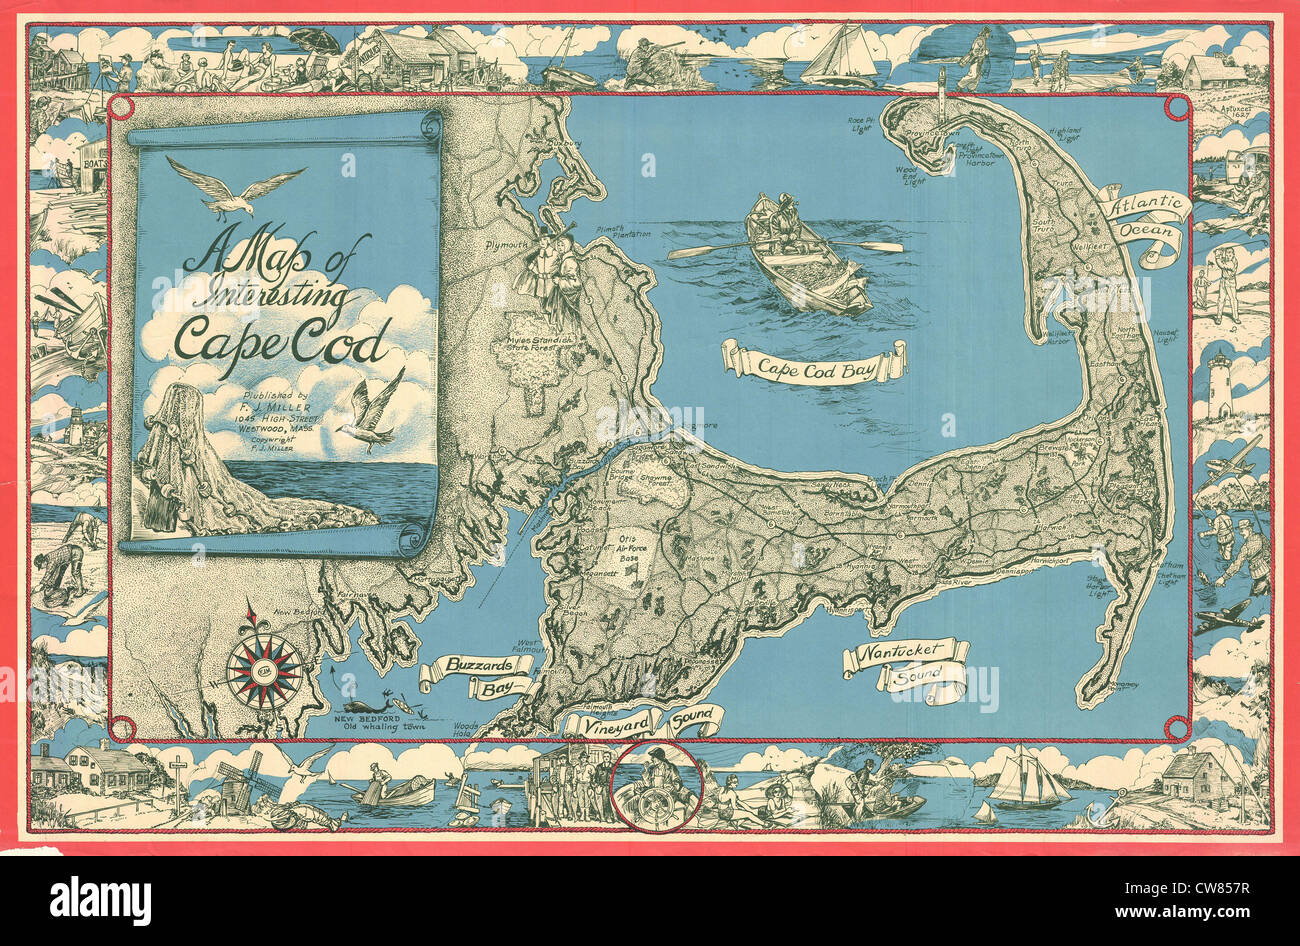 1945 Miller Map of Cape Cod, Massachusetts Stock Photo: 49966891 - Alamy